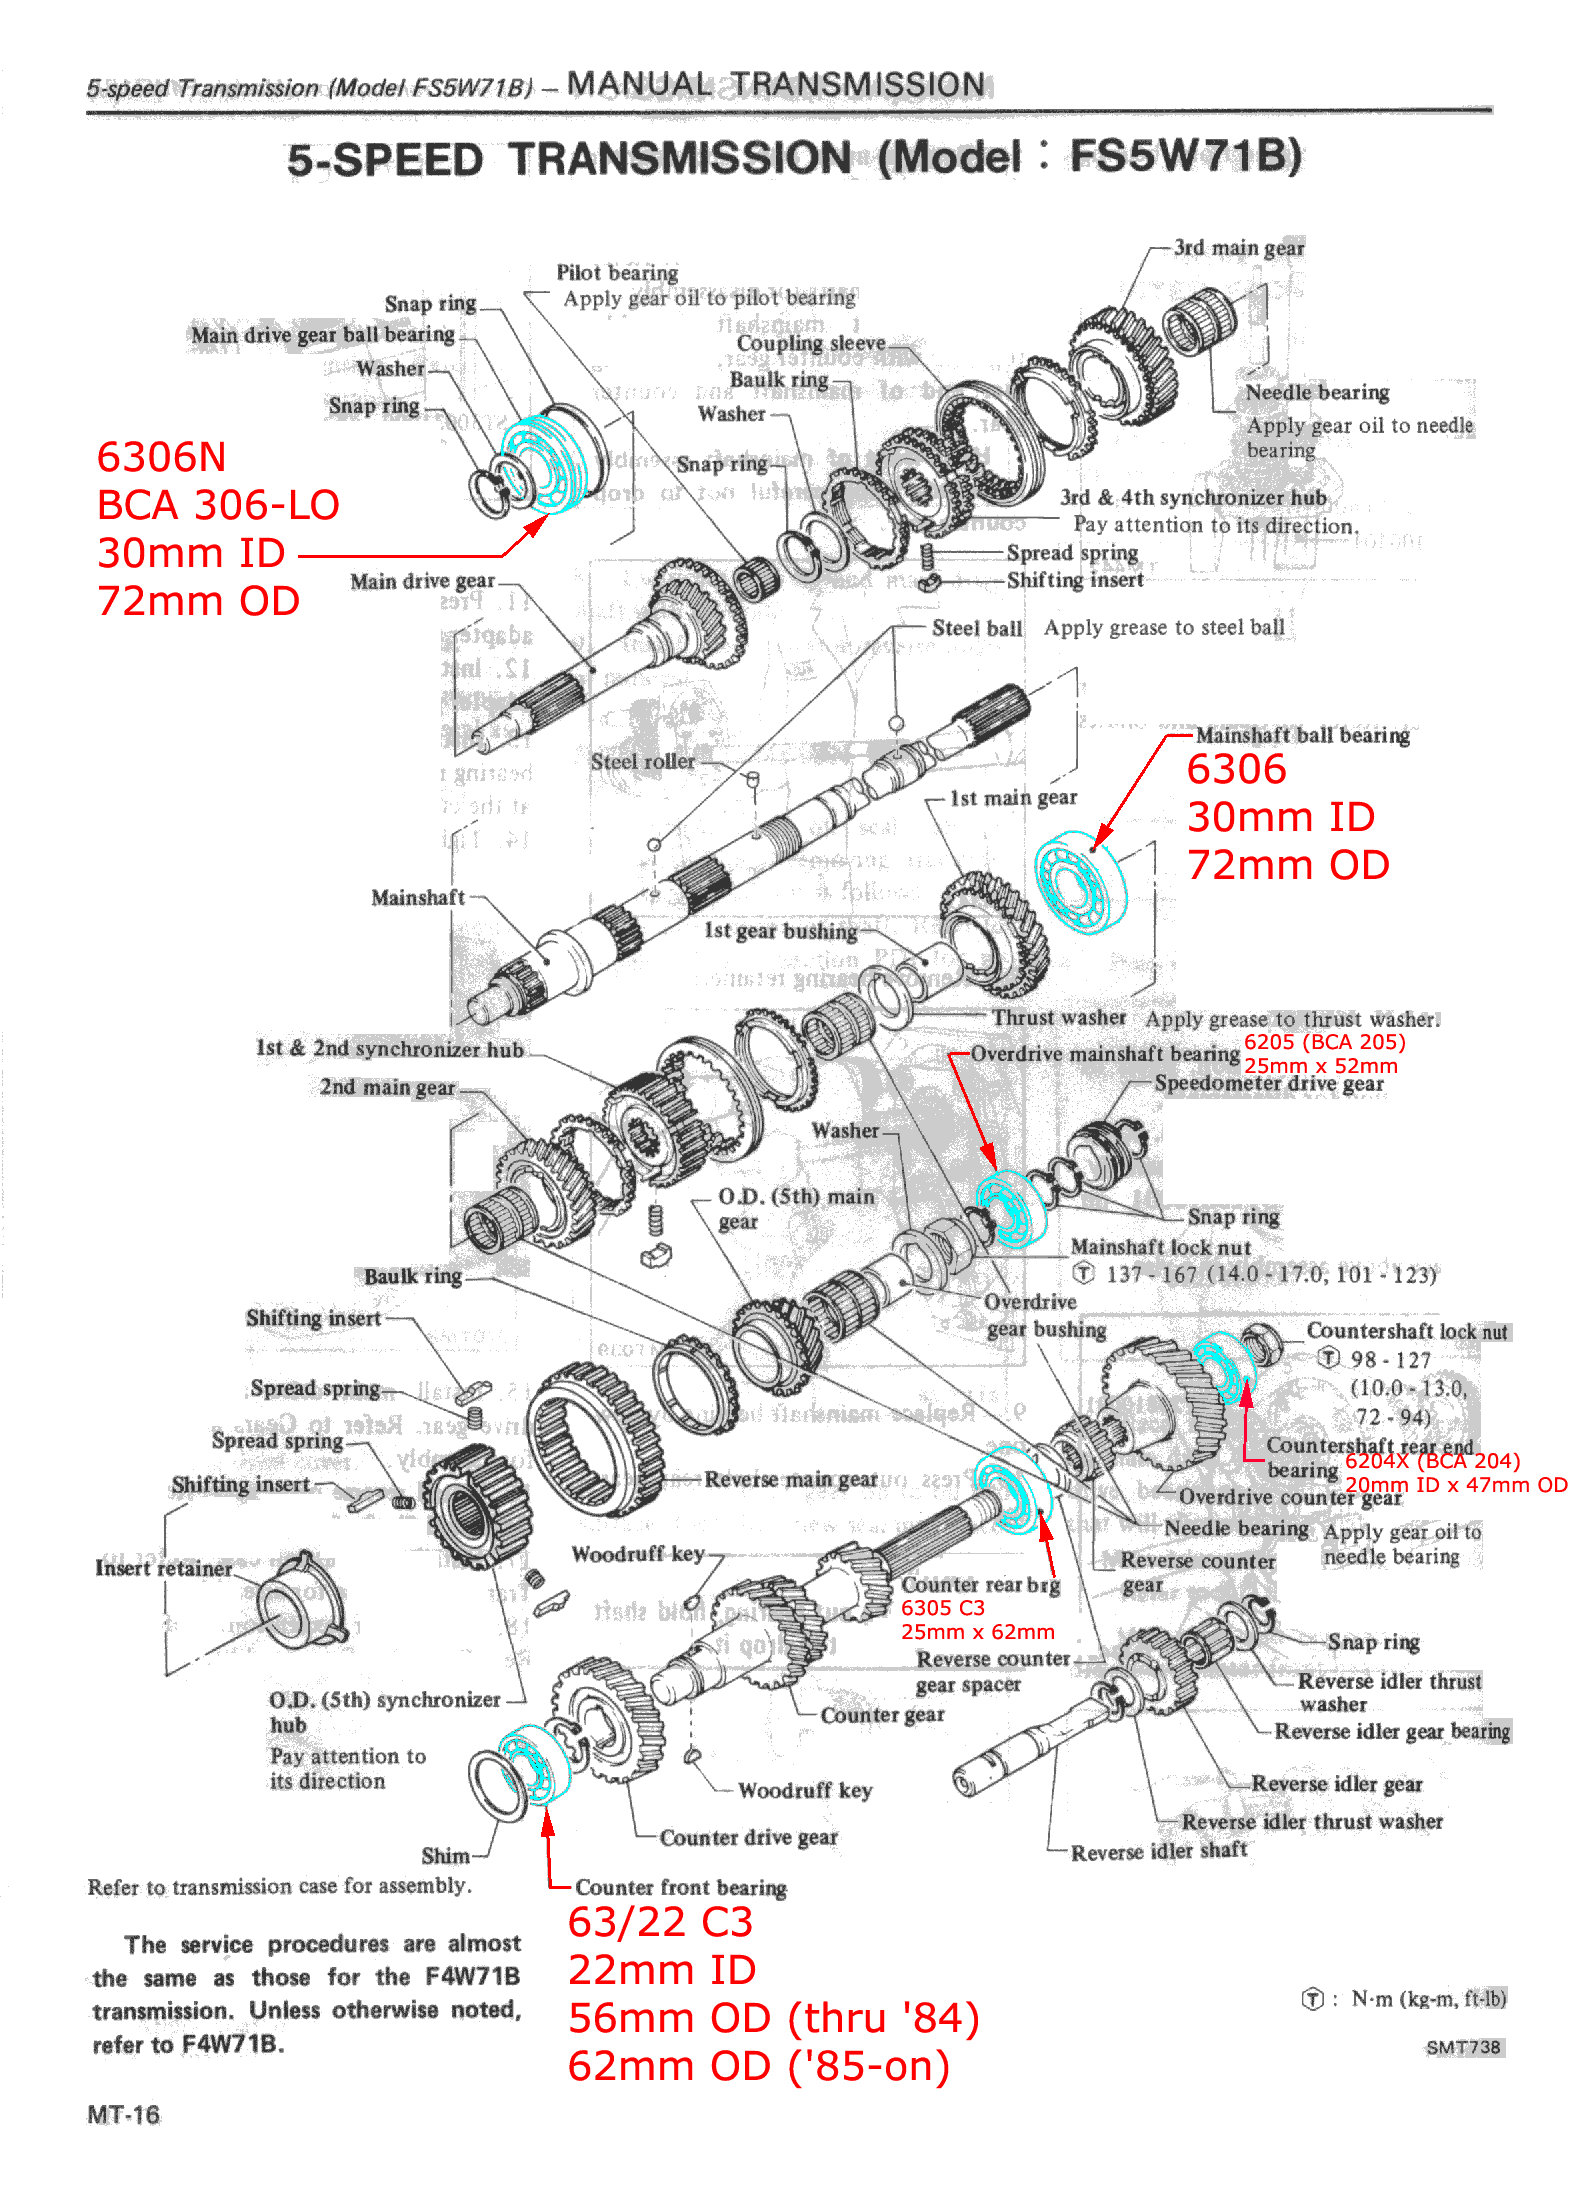 NissanDiesel Forums • View Topic SD2x Transmission Issues FS5W71x